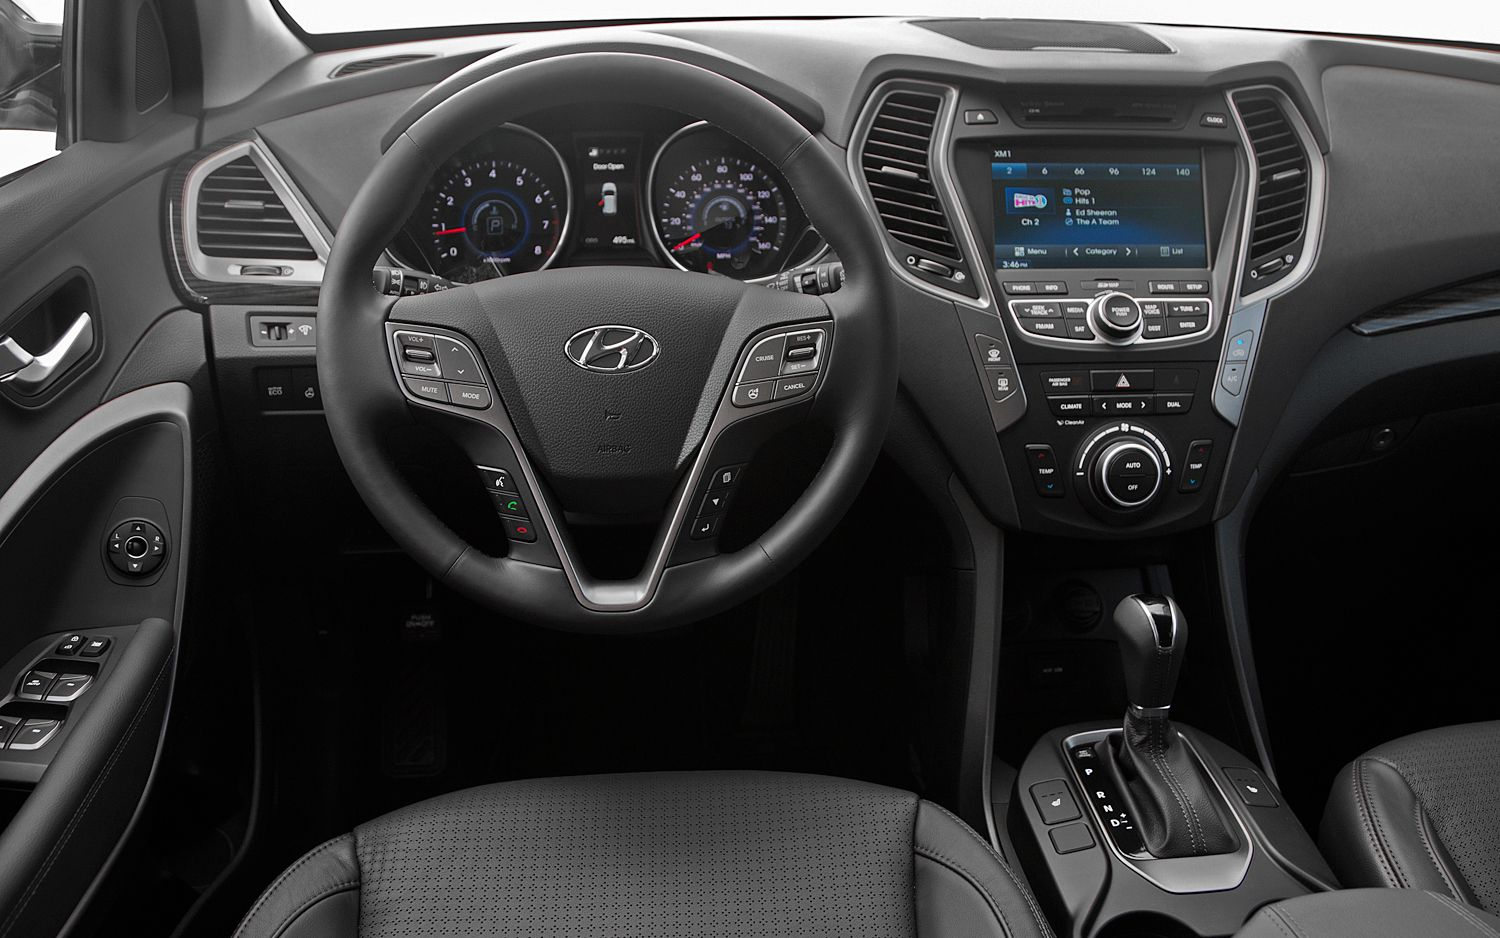 2013hyundaisantafesportcockpit.jpg (1500×938) (With